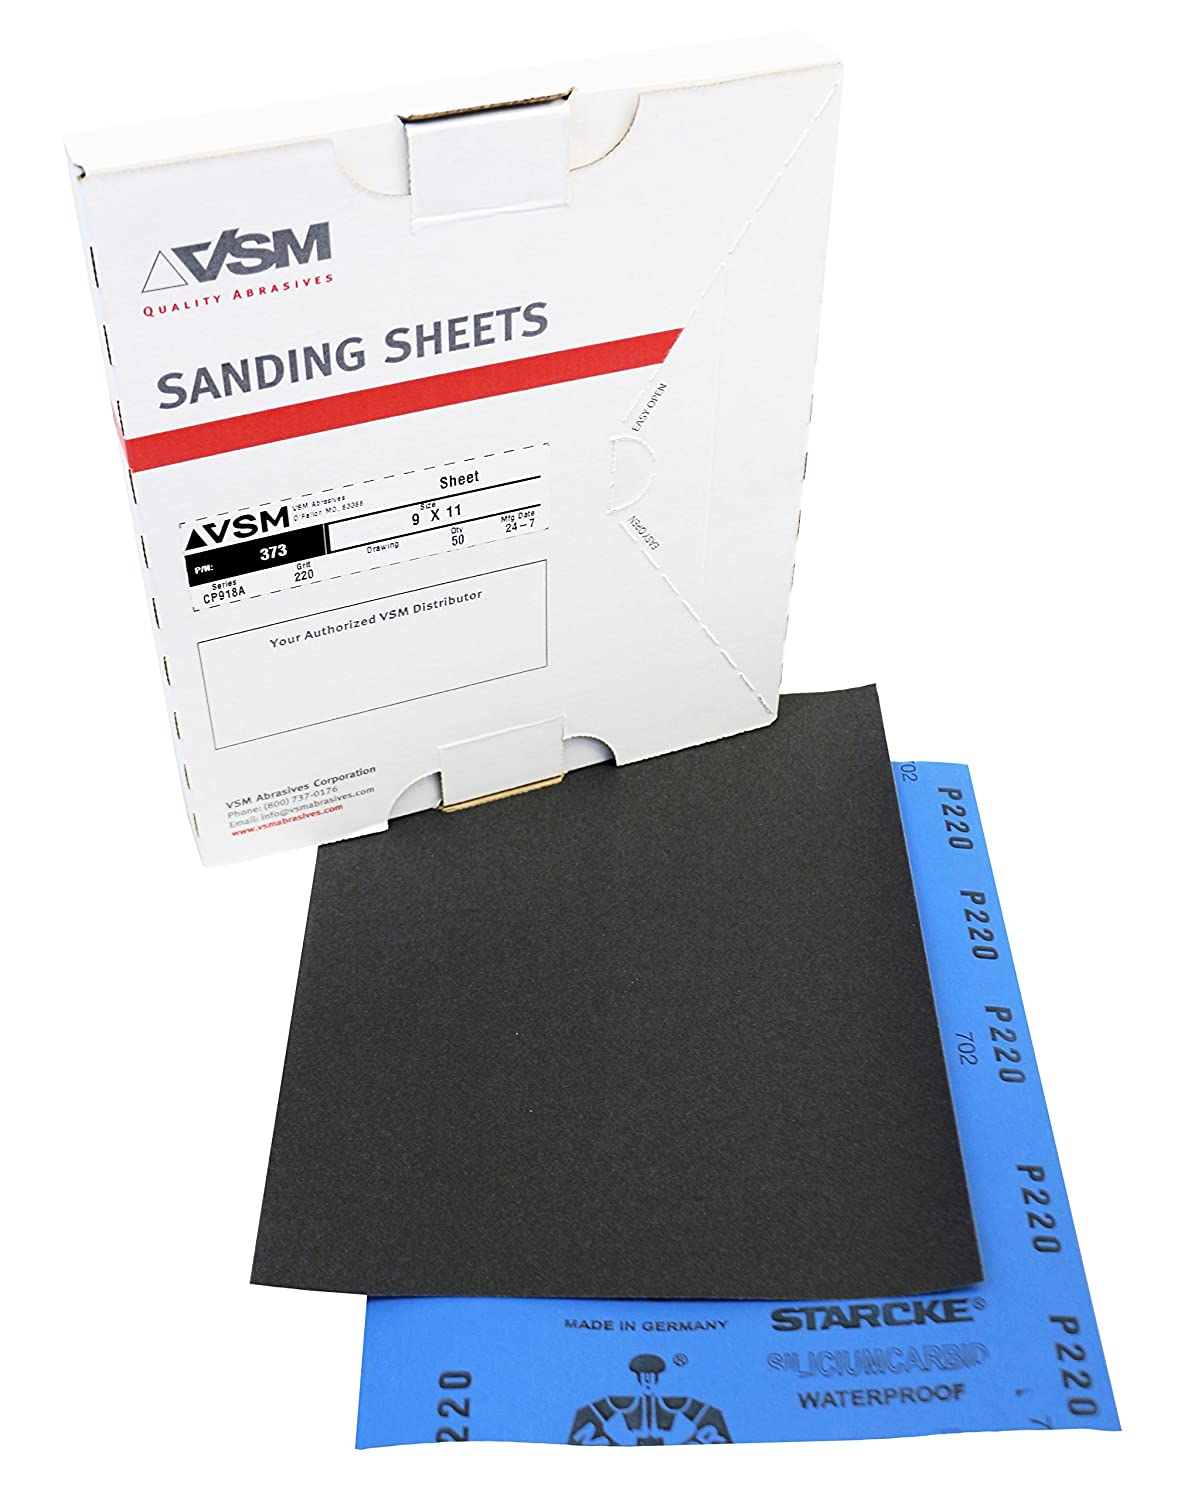 9 x 11 VSM 376 Abrasives Waterproof Sheet 9 x 11 VSM Abrasives Co. Pack of 50 220 Grit A Weight Paper Silicon Carbide